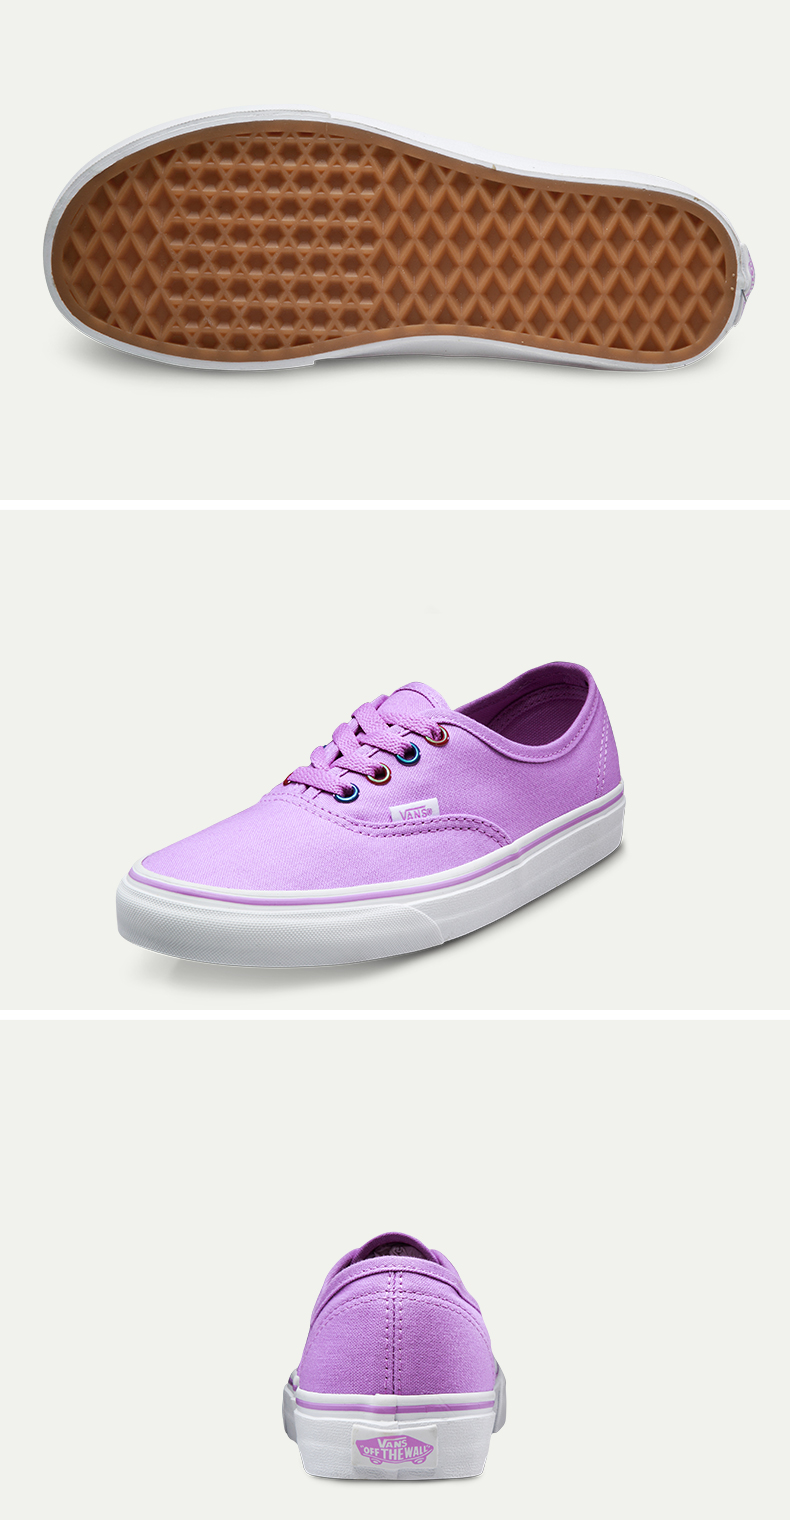 Original Vans New Arrival Black and Purple Low-Top Women's Skateboarding Shoes Sport Shoes Canvas Shoes Sneakers free shipping